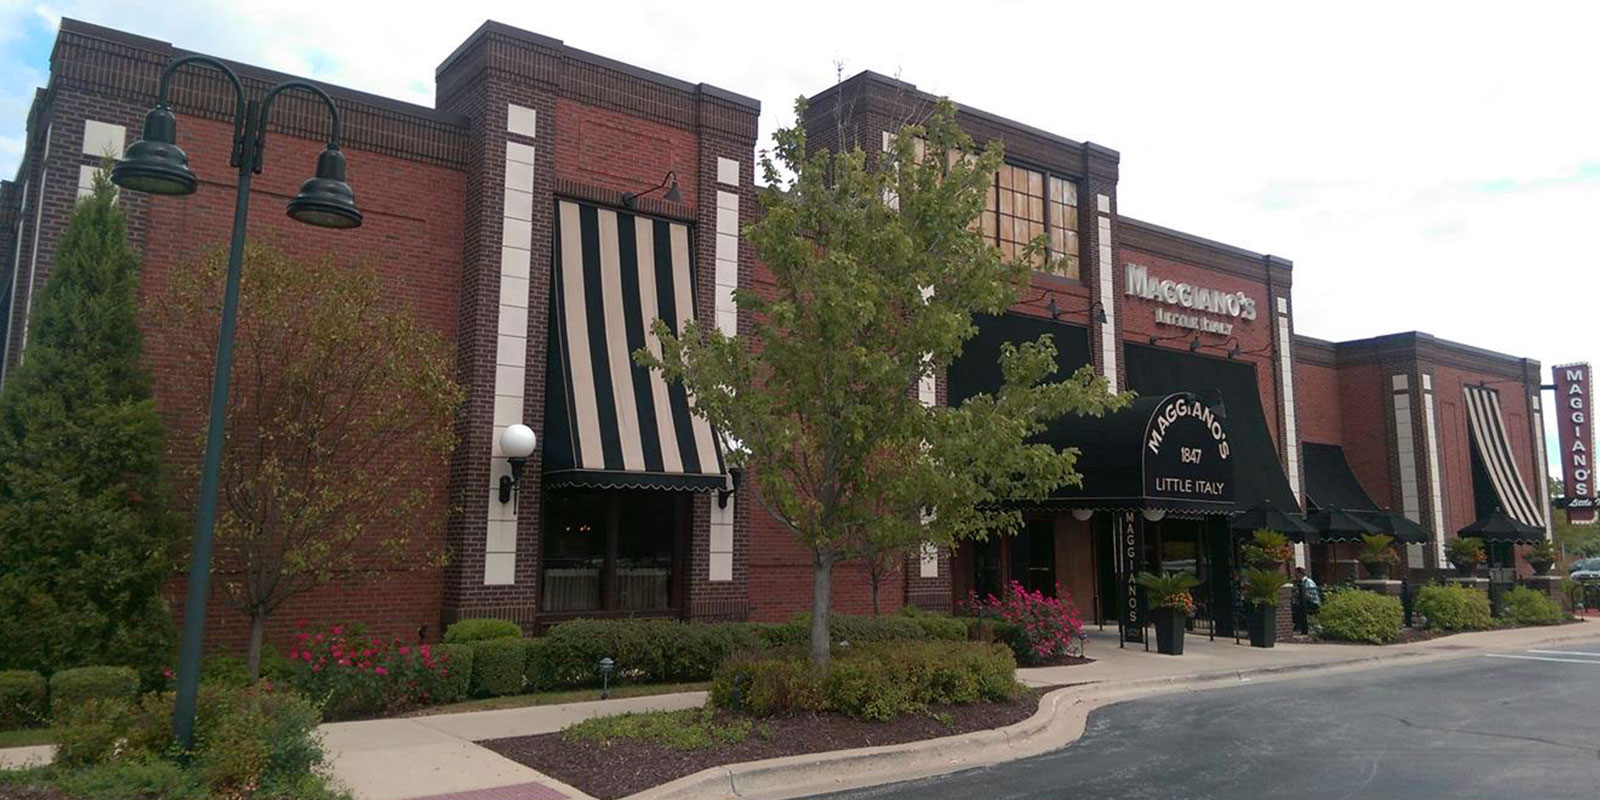 Exterior of Maggiano's Little Italy